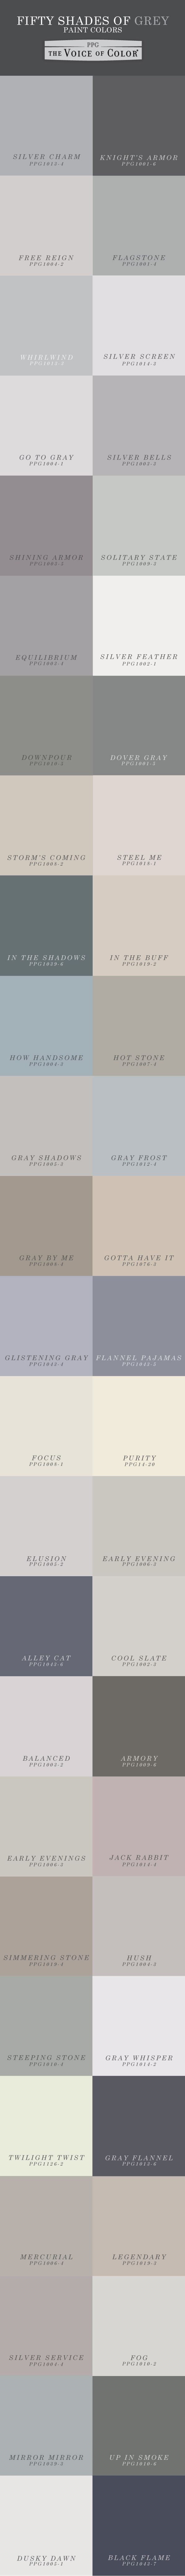 Fifty Shades of Grey Paint Colors from the PPG Voice of Color palette! Here